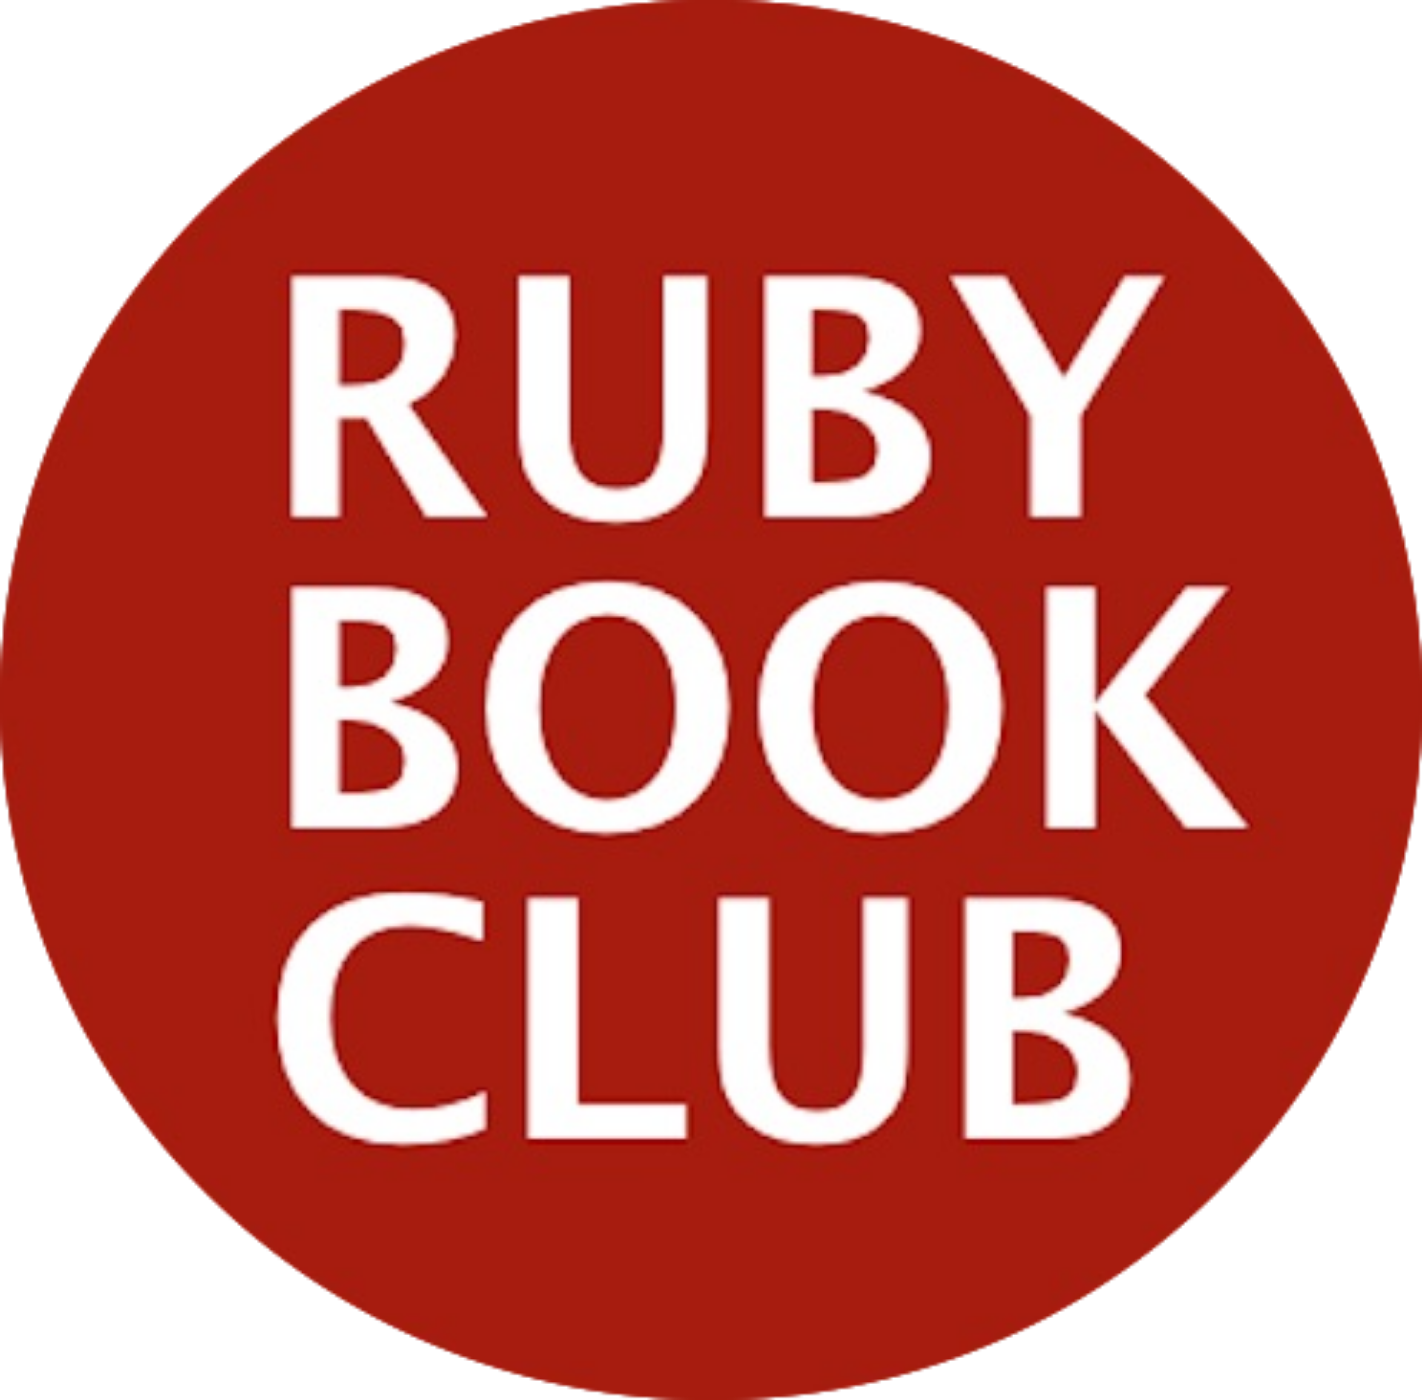 Ruby Book Club